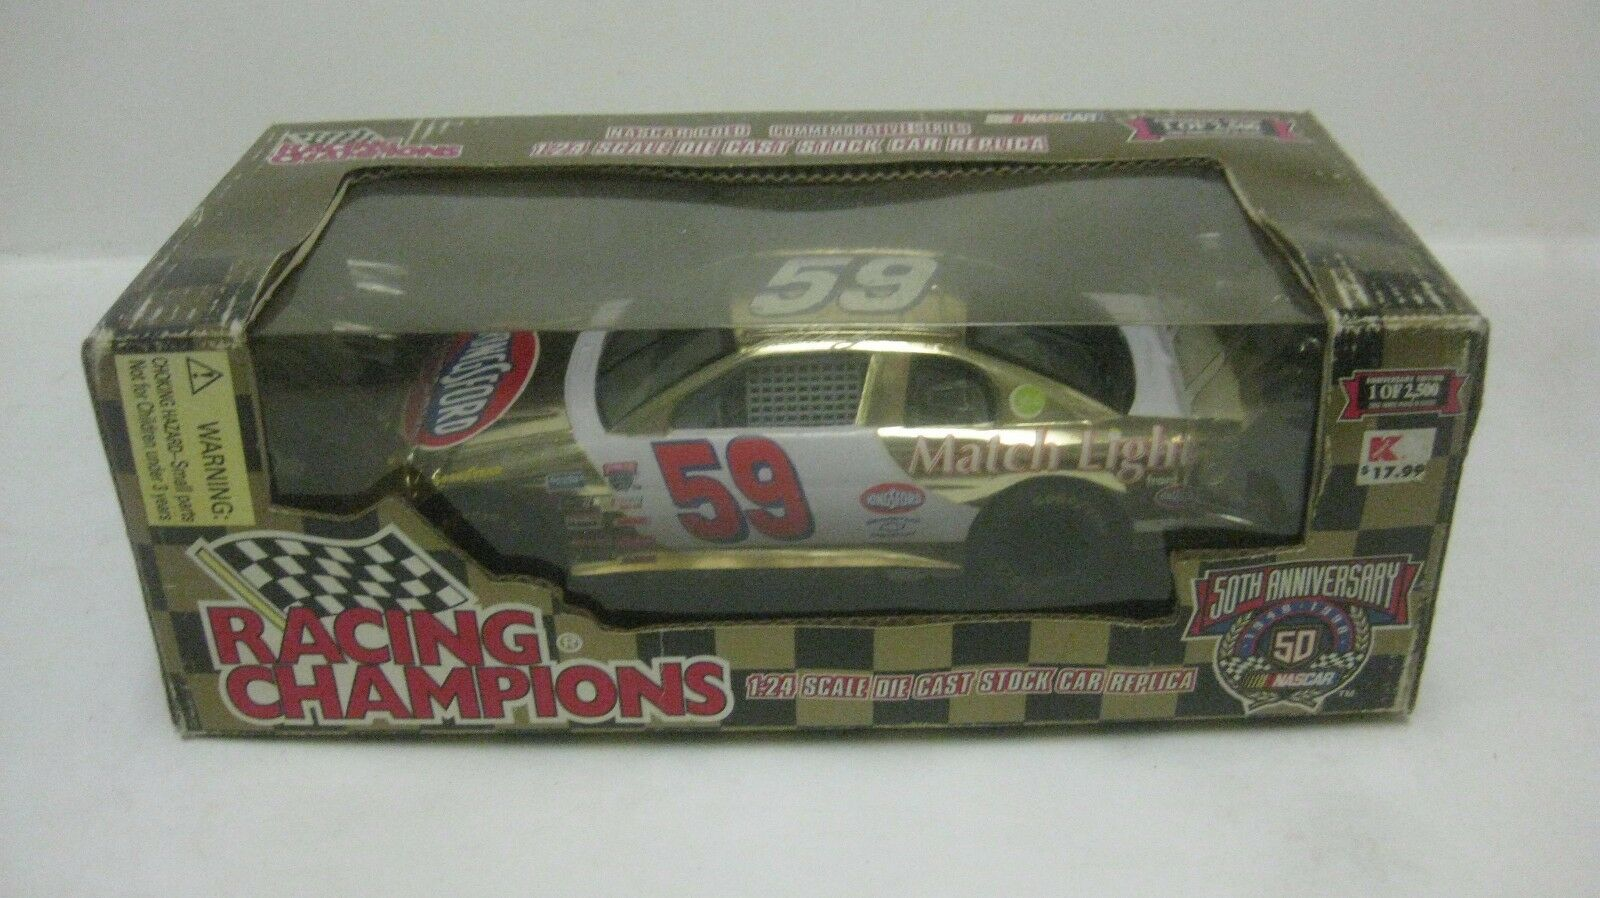 Nascar 50th Robert Pressley Chevy Lumina 1 24 à L'Échelle Miniature 1998